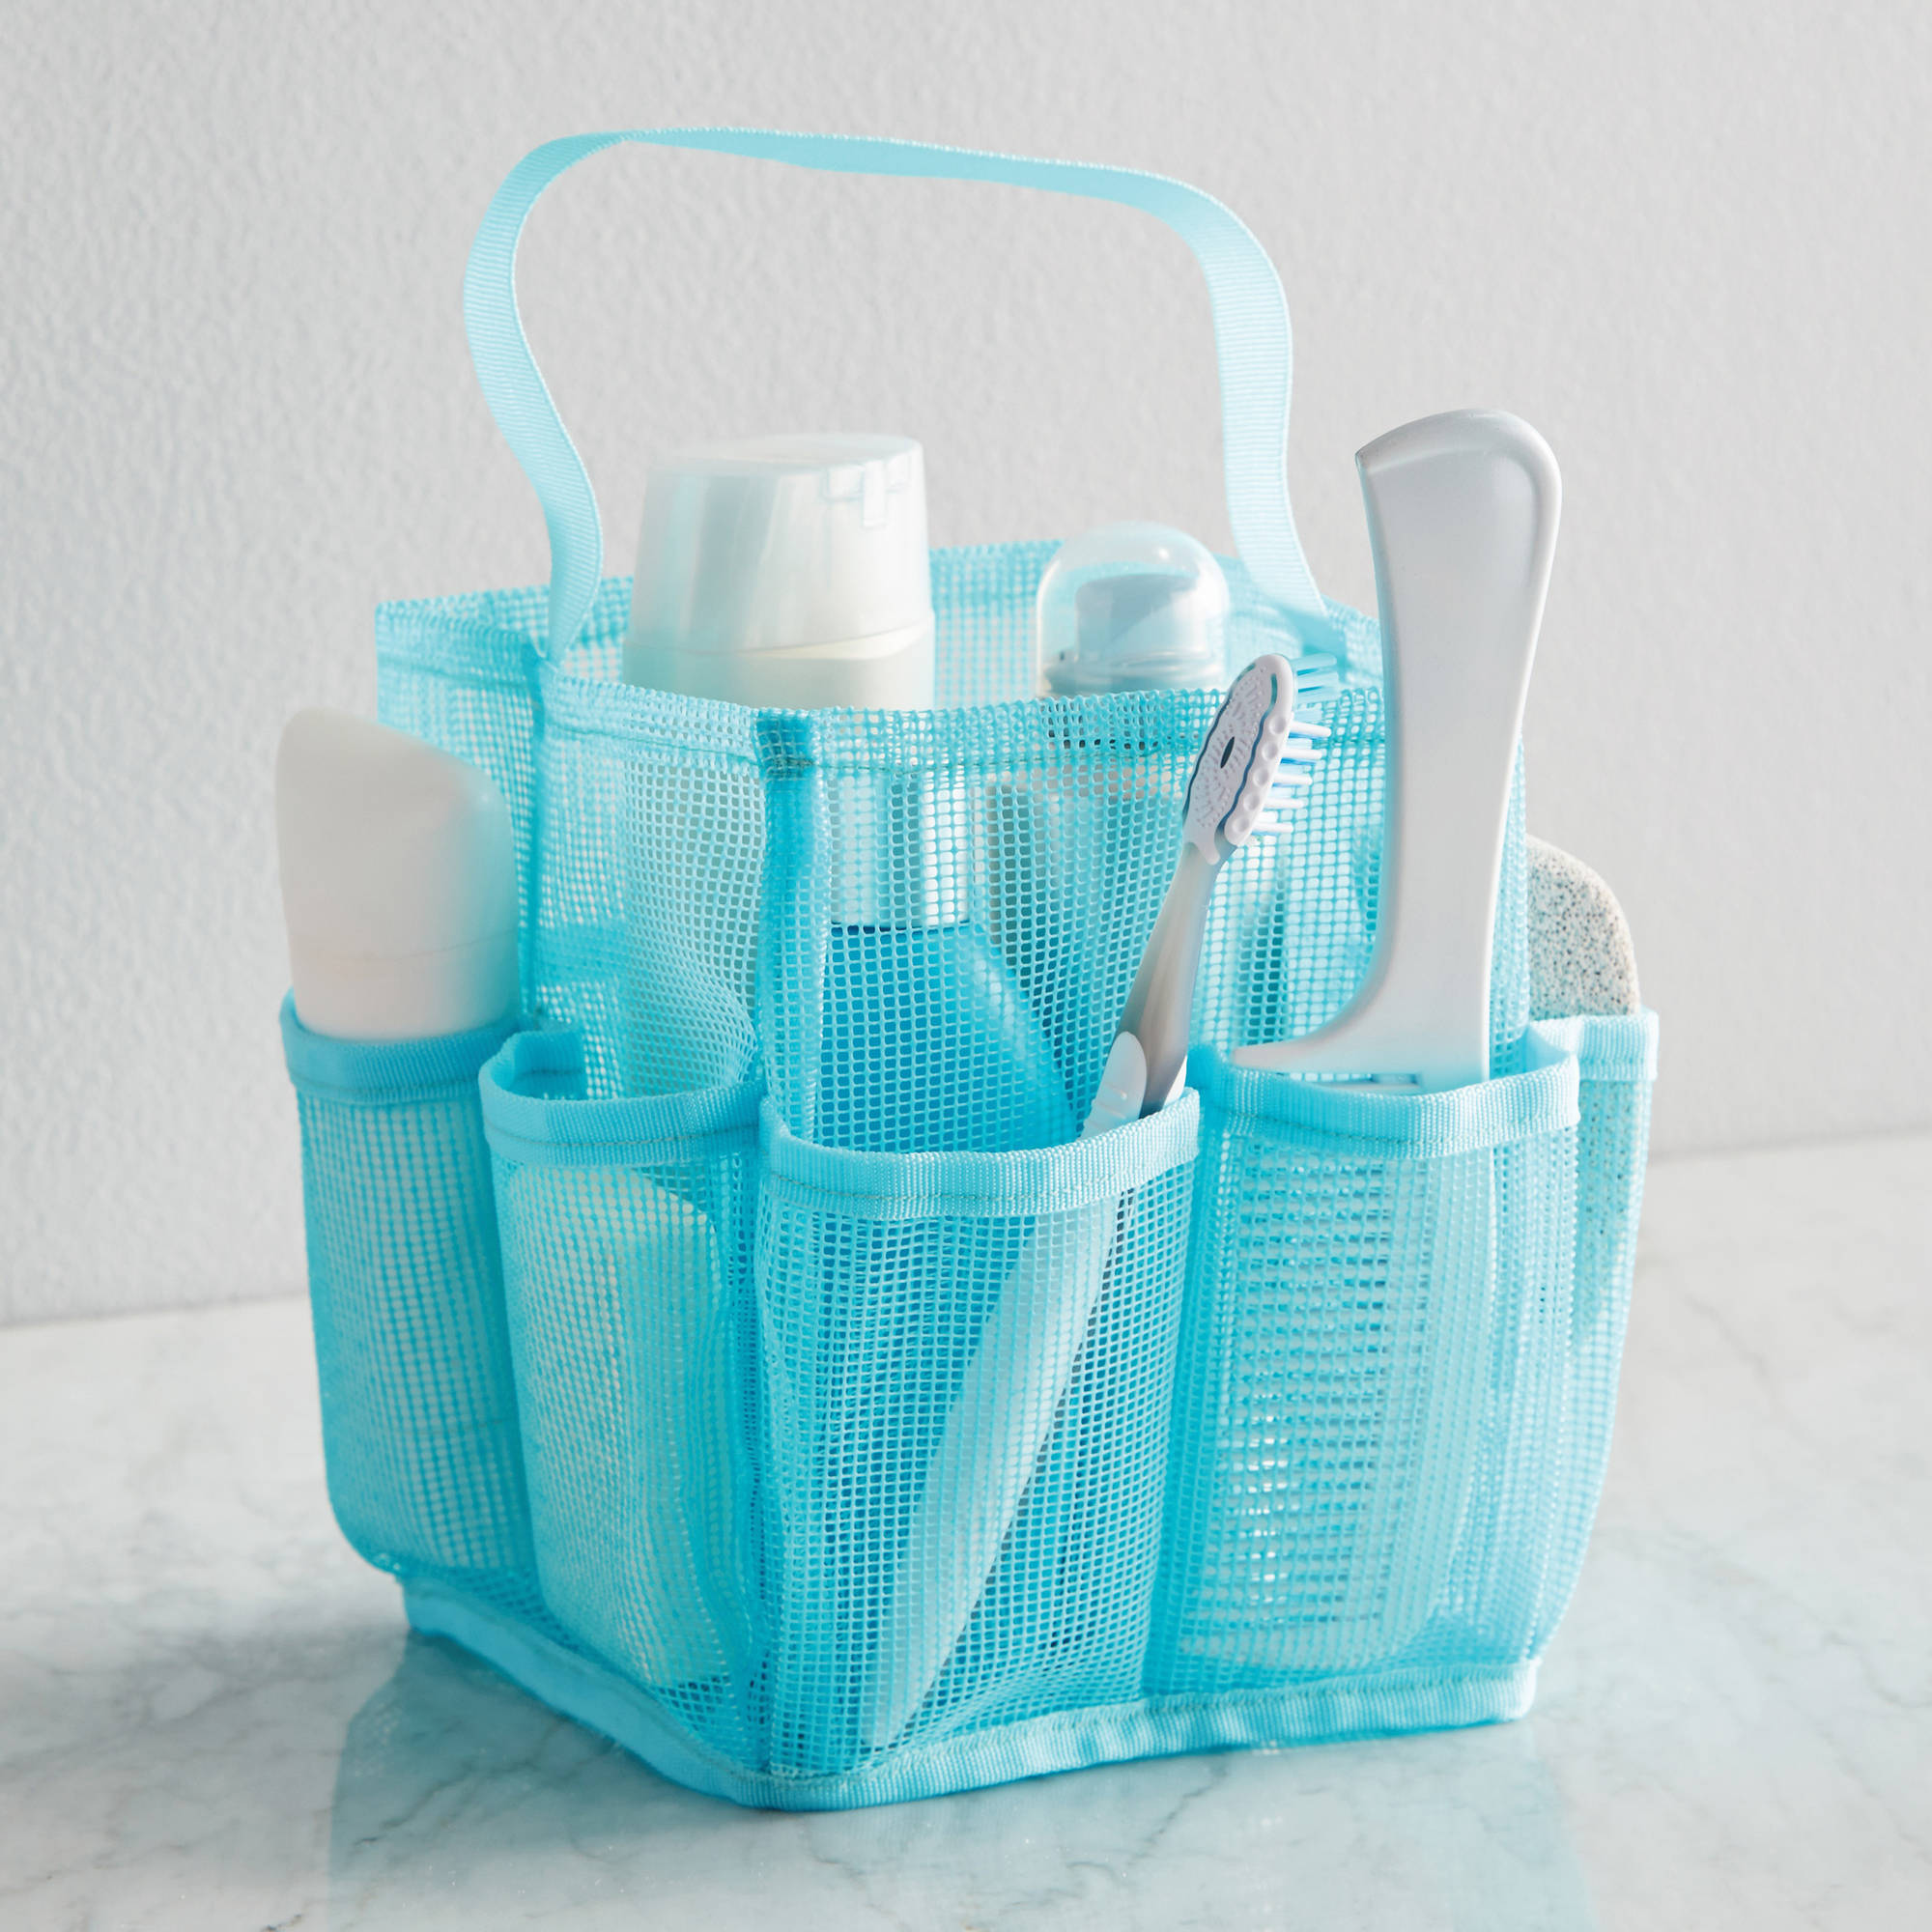 Mesh Shower Tote mainstays mesh shower tote, teal - walmart